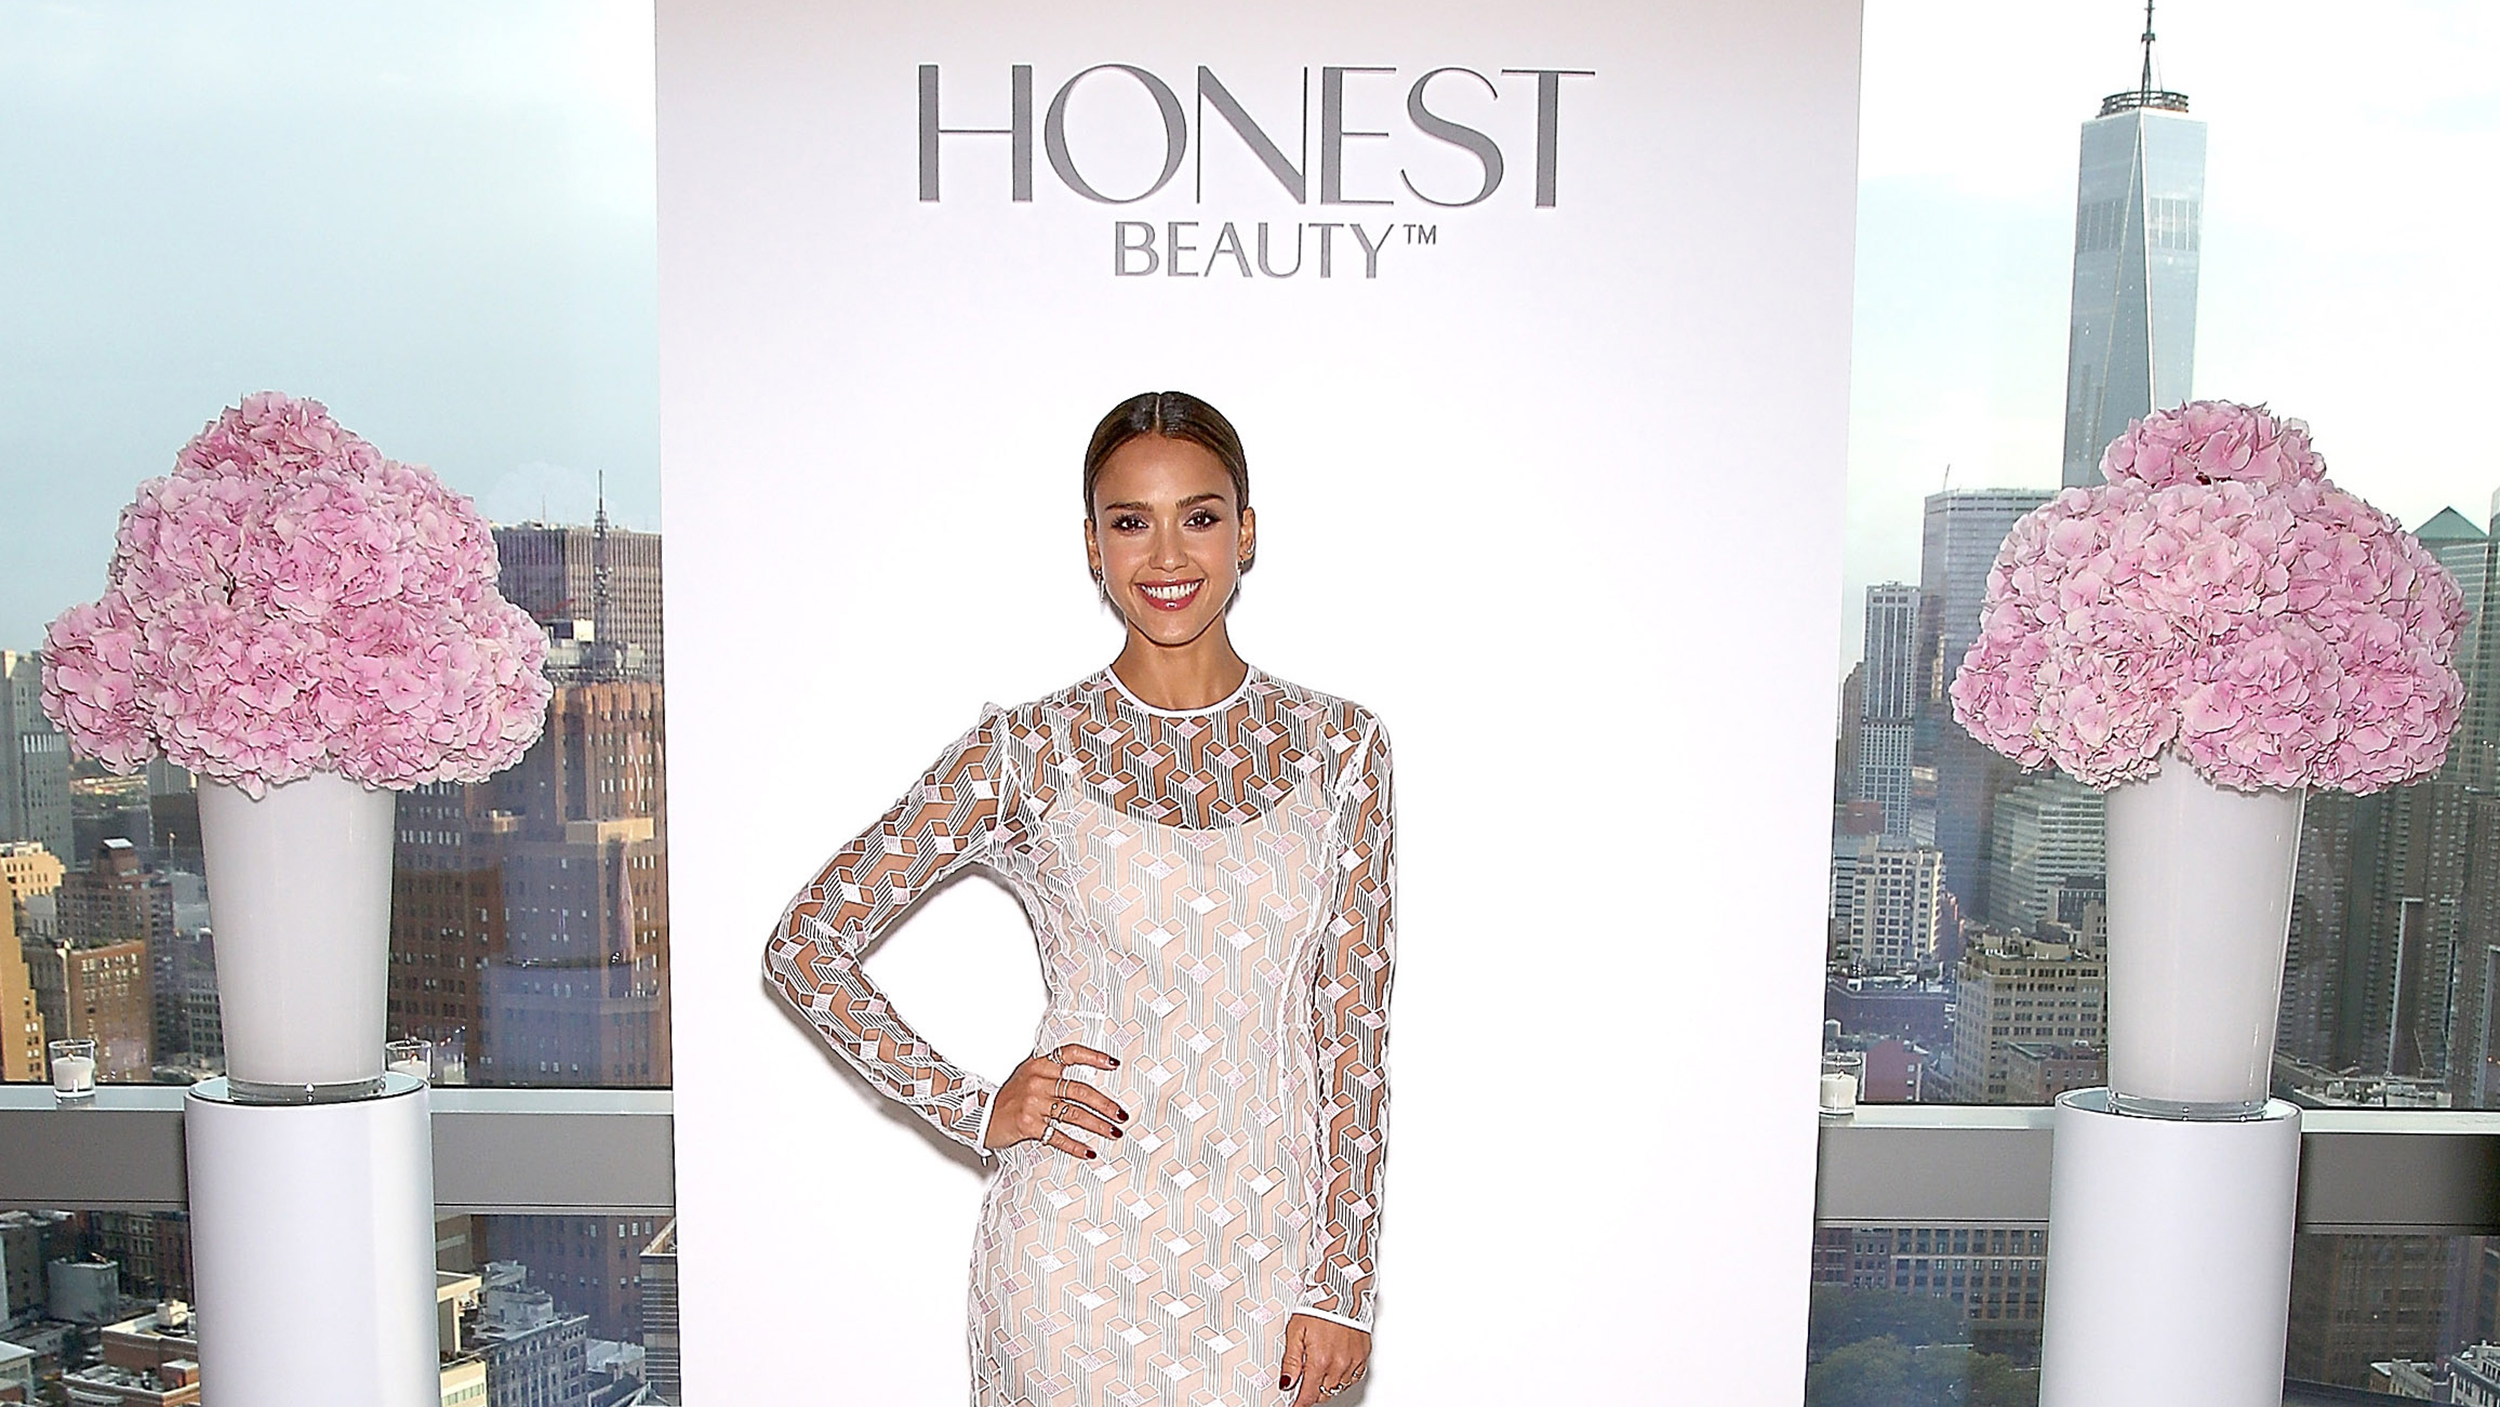 NEW YORK, NY - SEPTEMBER 09:  Actress Jessica Alba, Founder and Chief Creative Officer of The Honest Company, attends the Honest Beauty Launch at Trump SoHo on September 9, 2015 in New York City.  (Photo by Paul Zimmerman/Getty Images)